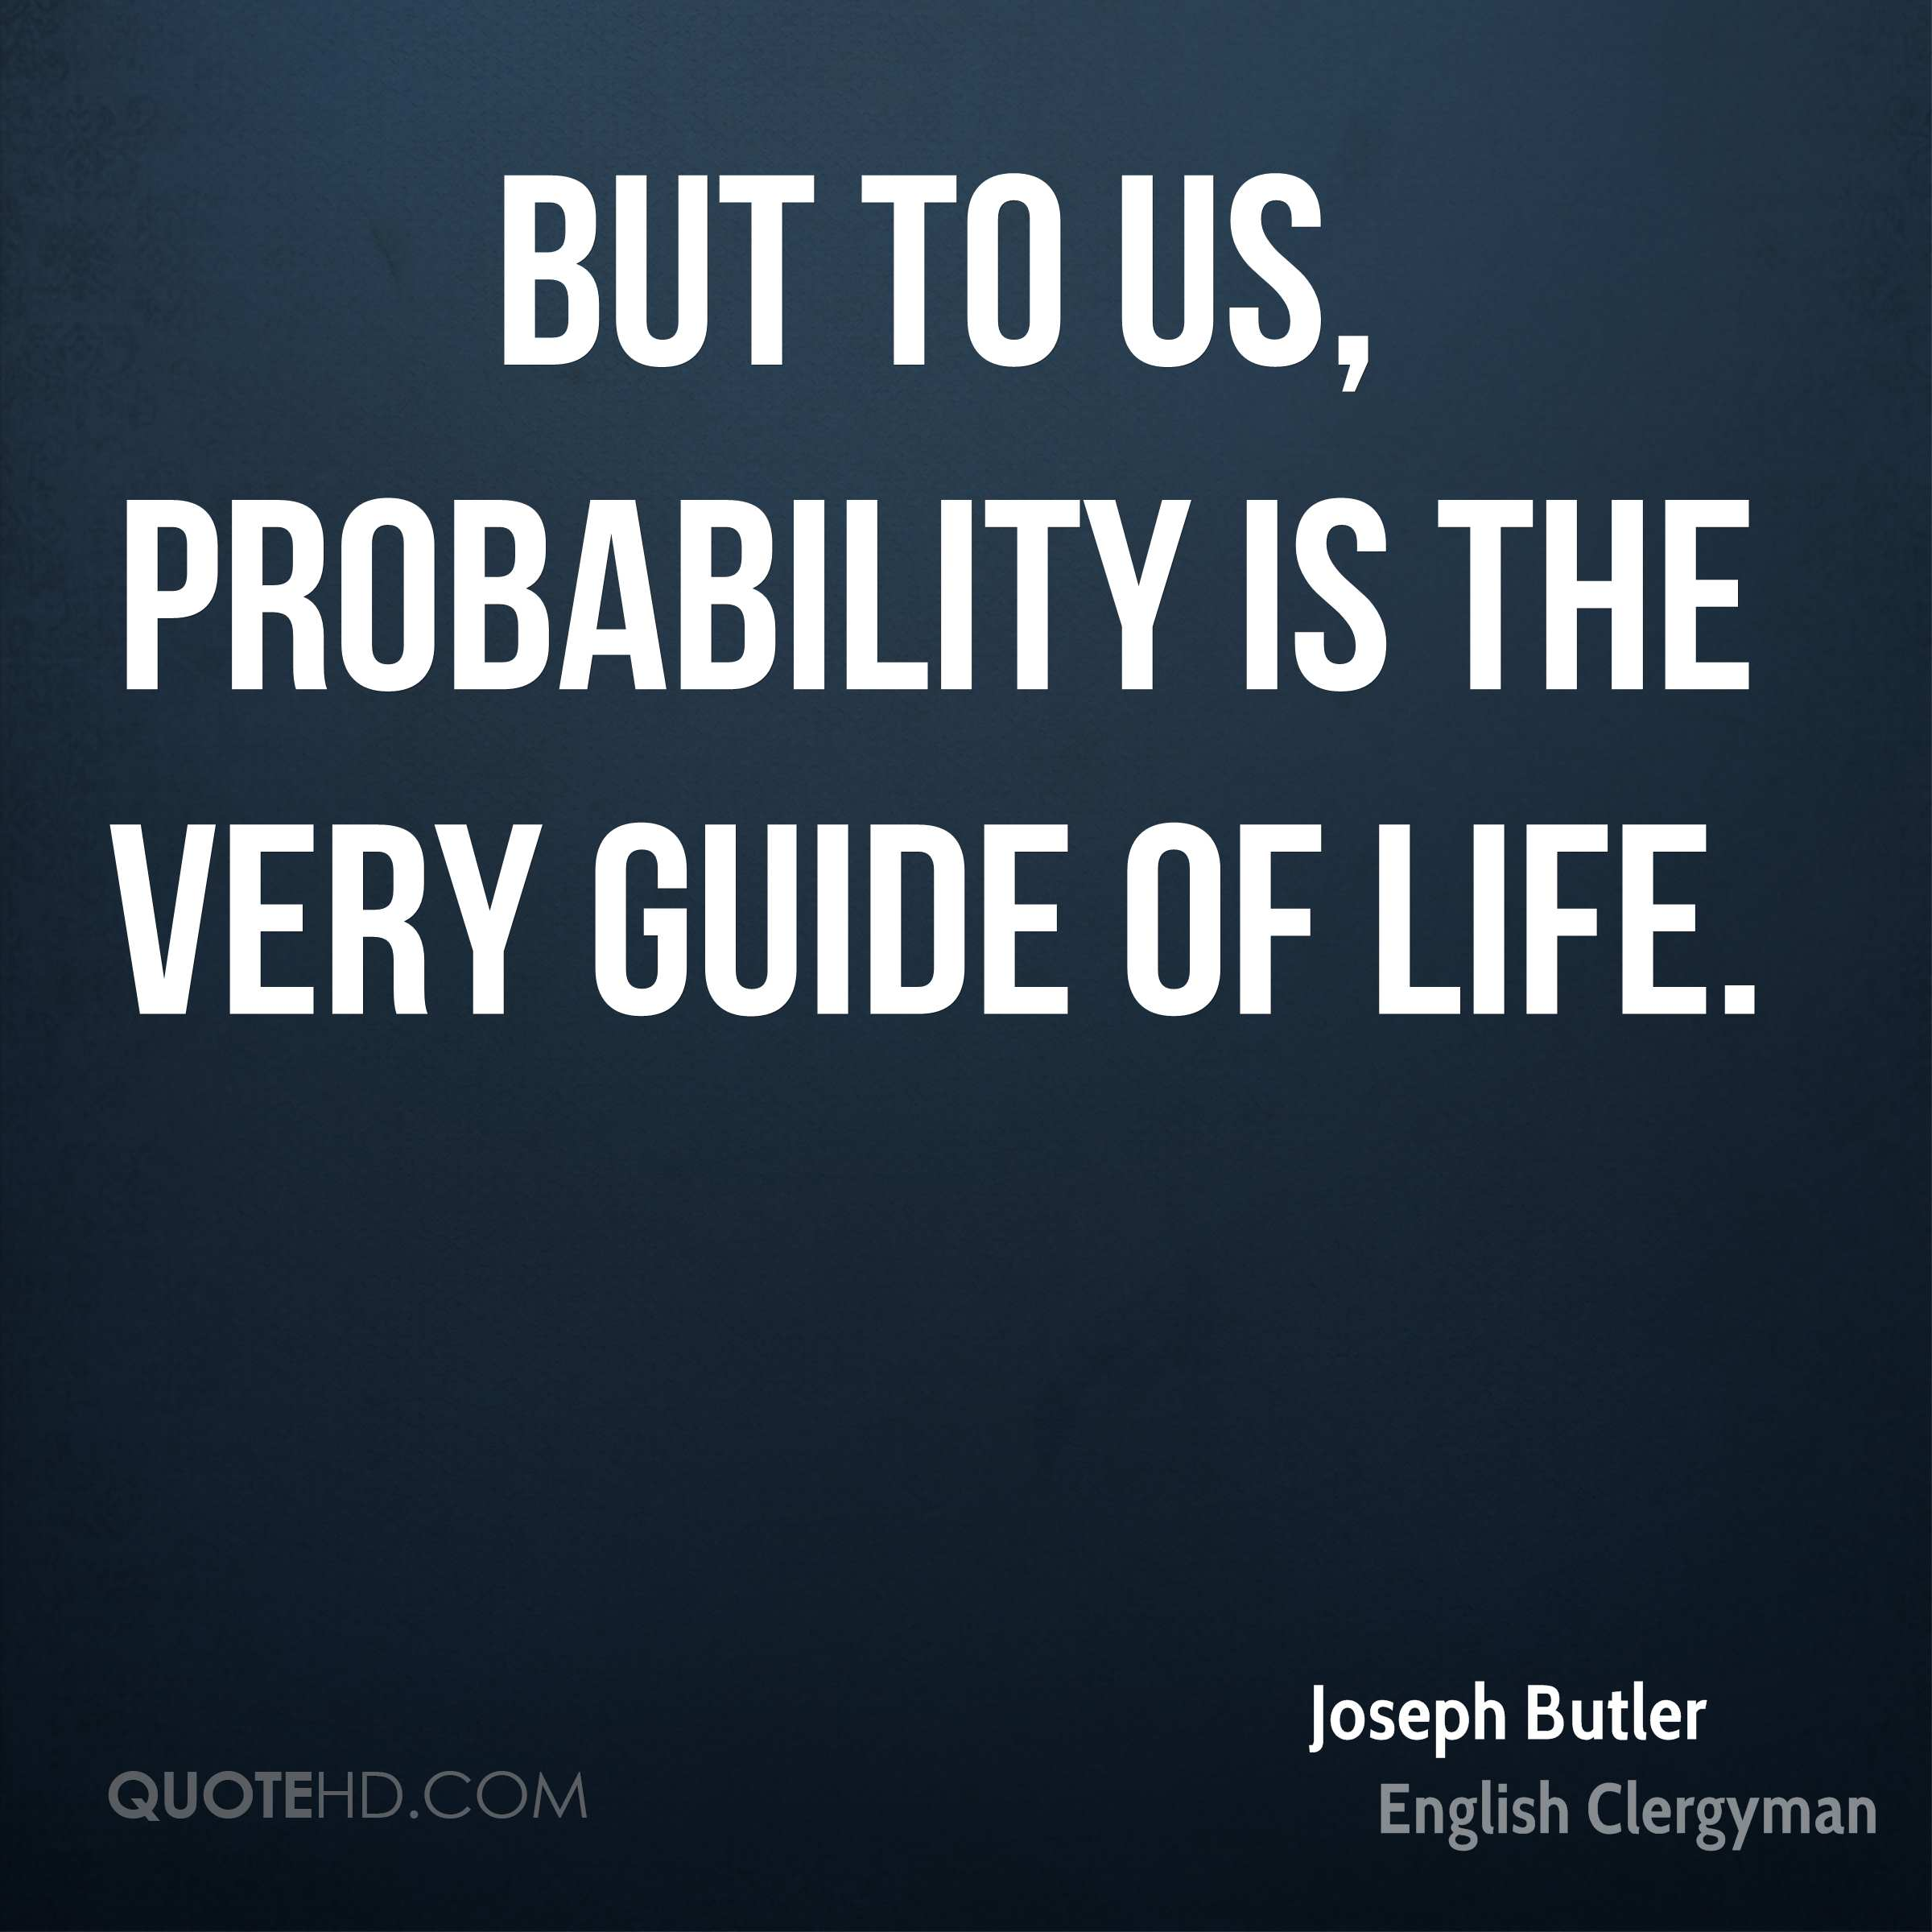 But to us, probability is the very guide of life.